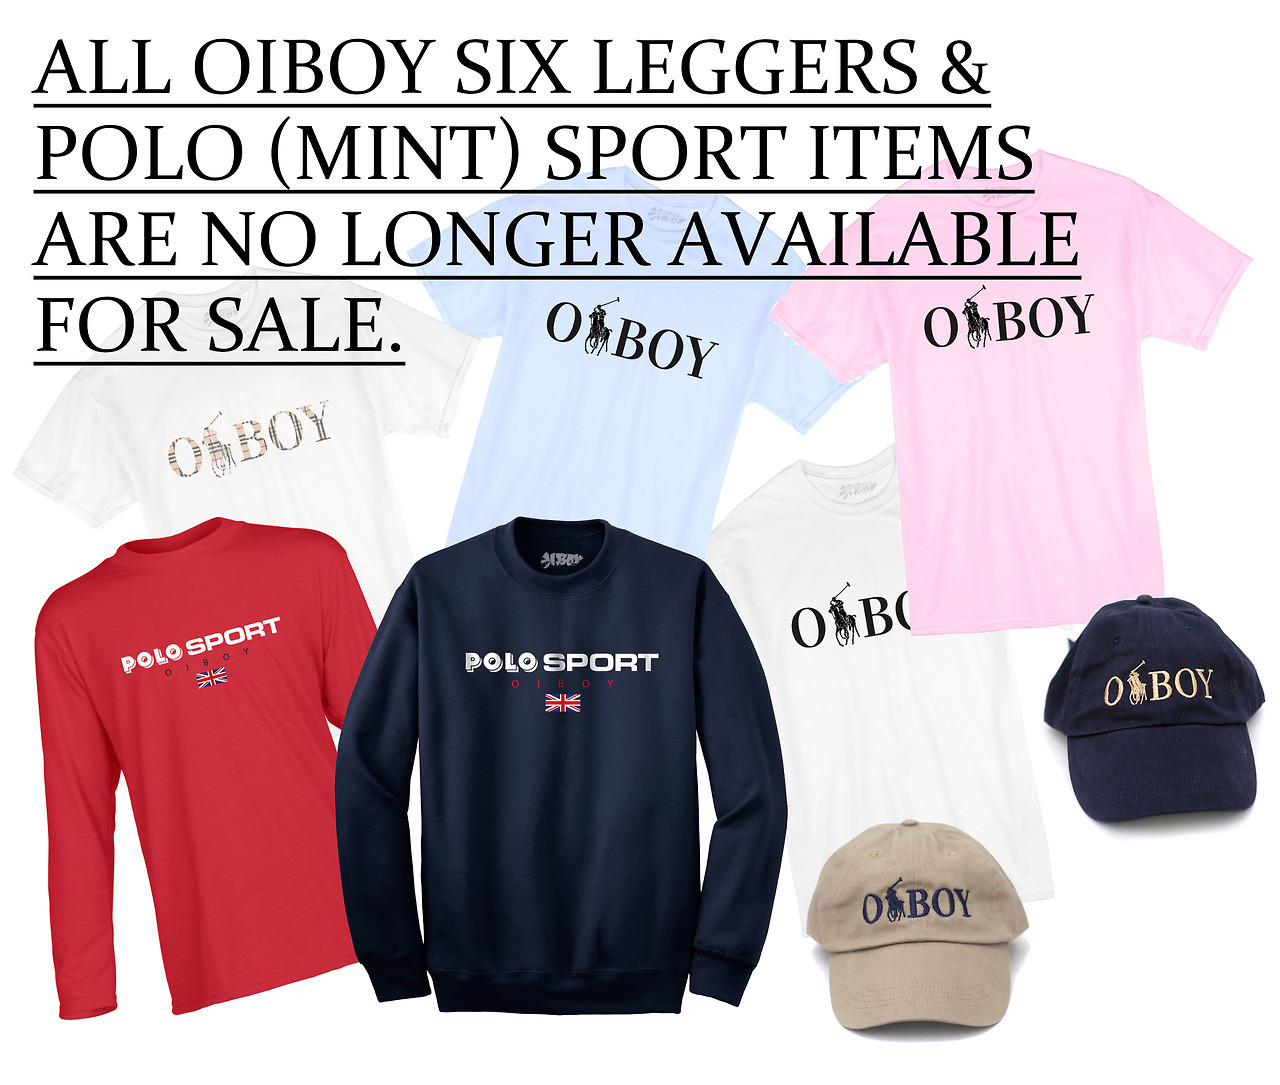 Due to matters out of our hands we can no longer have these items for sale.